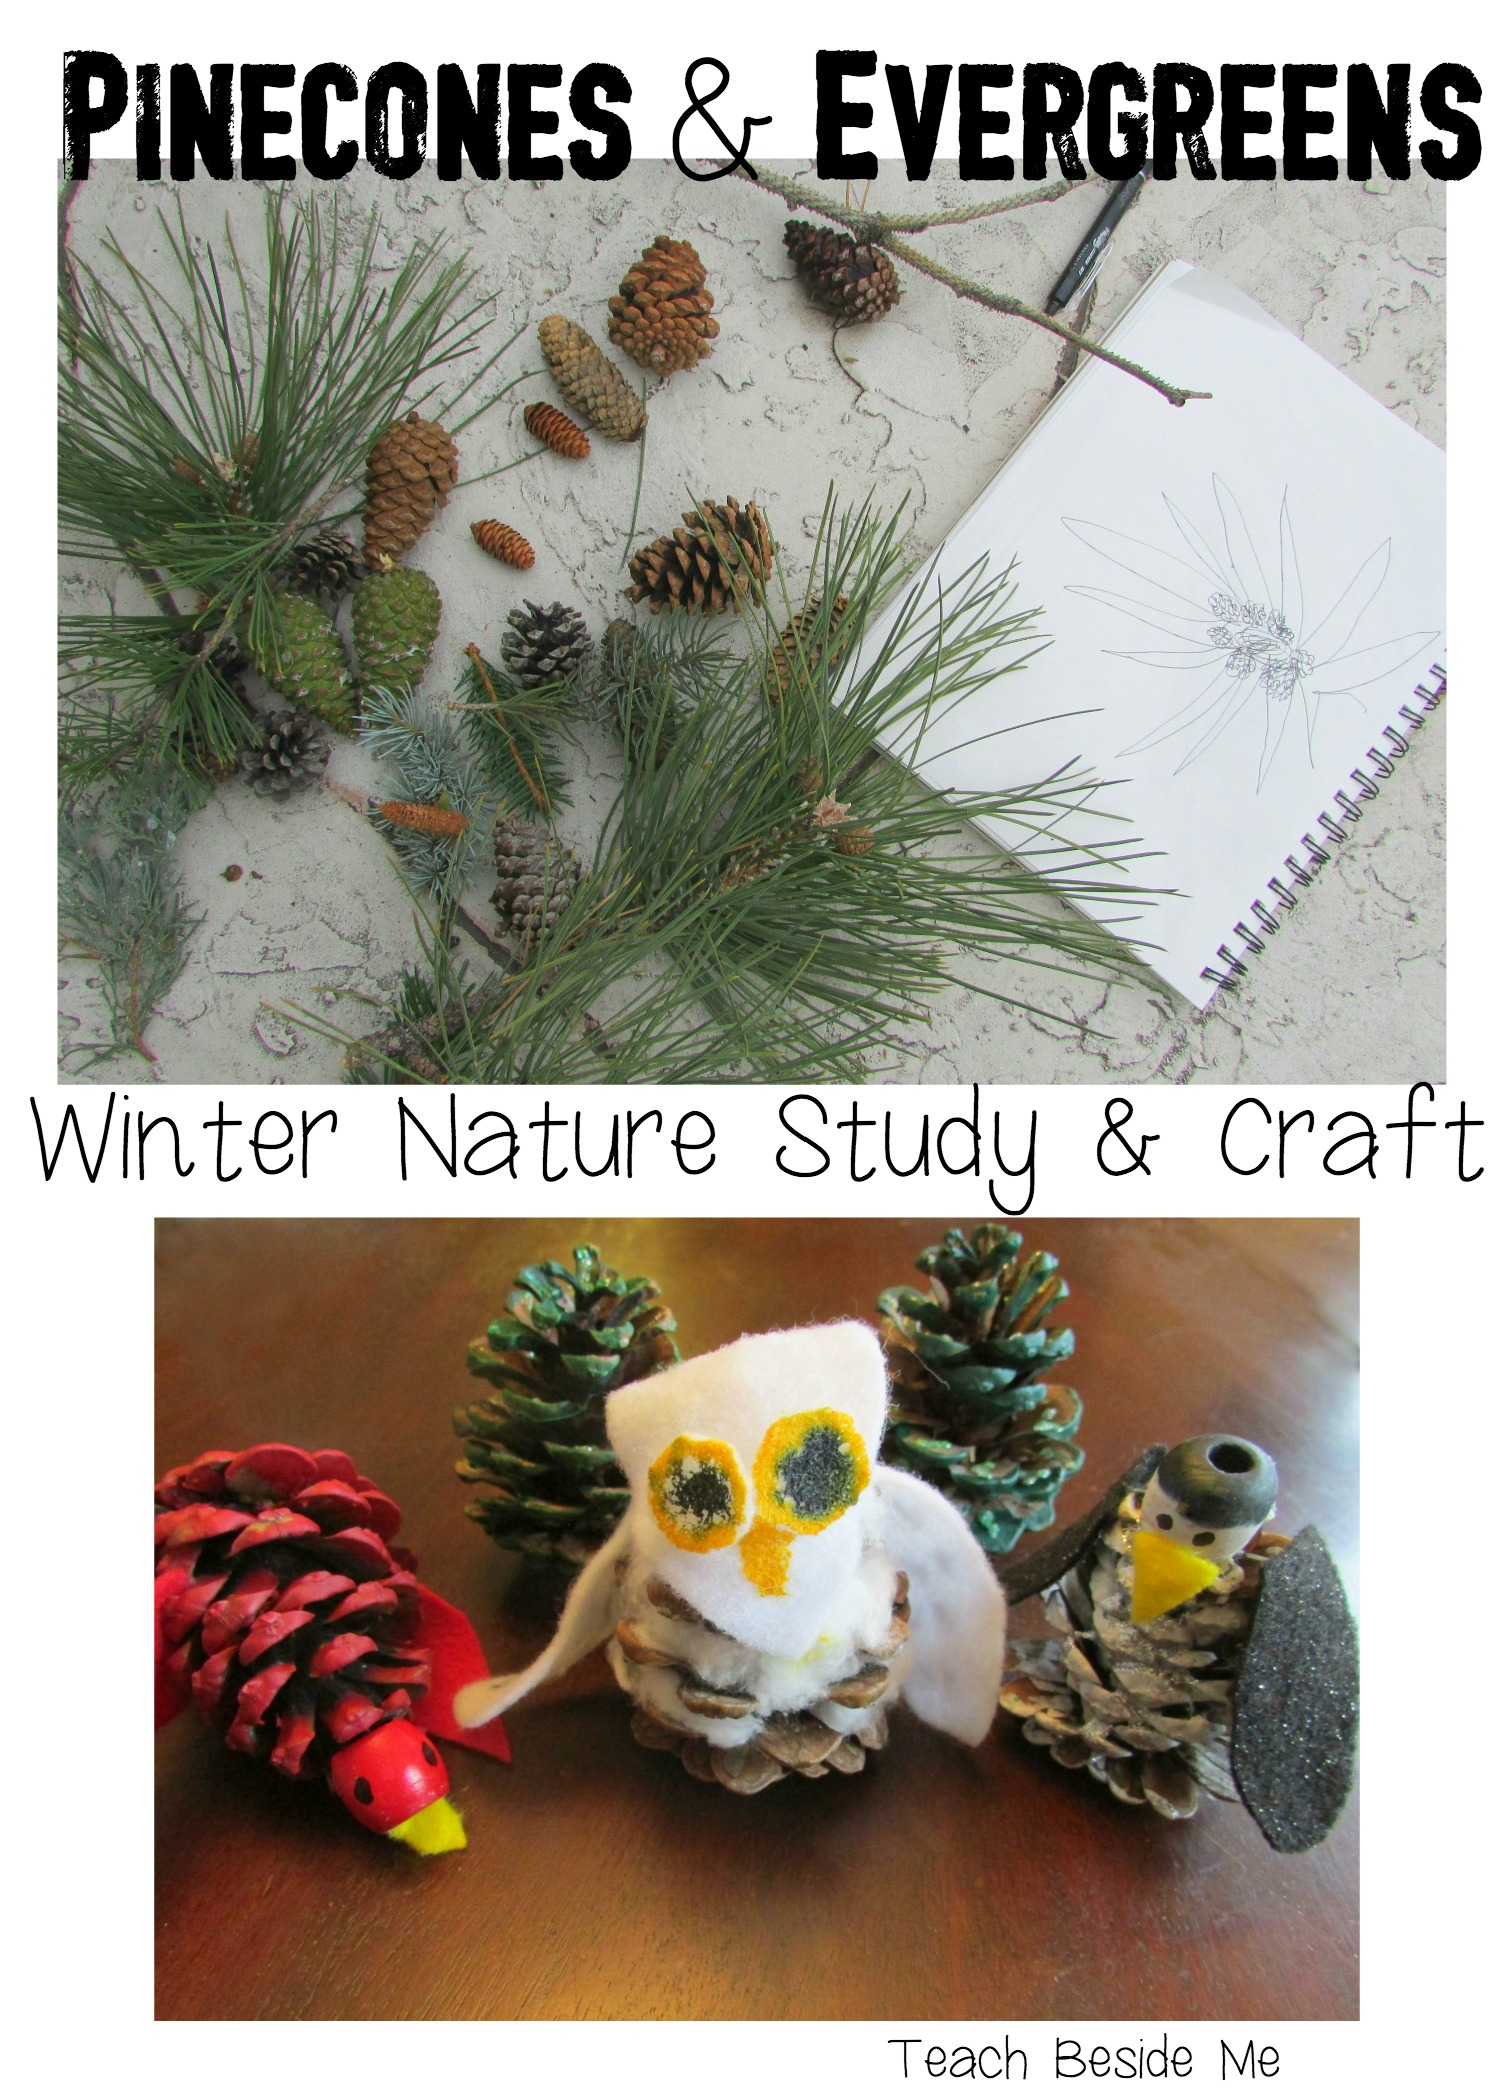 Evergreens & Pinecones (Nature Study & Craft)